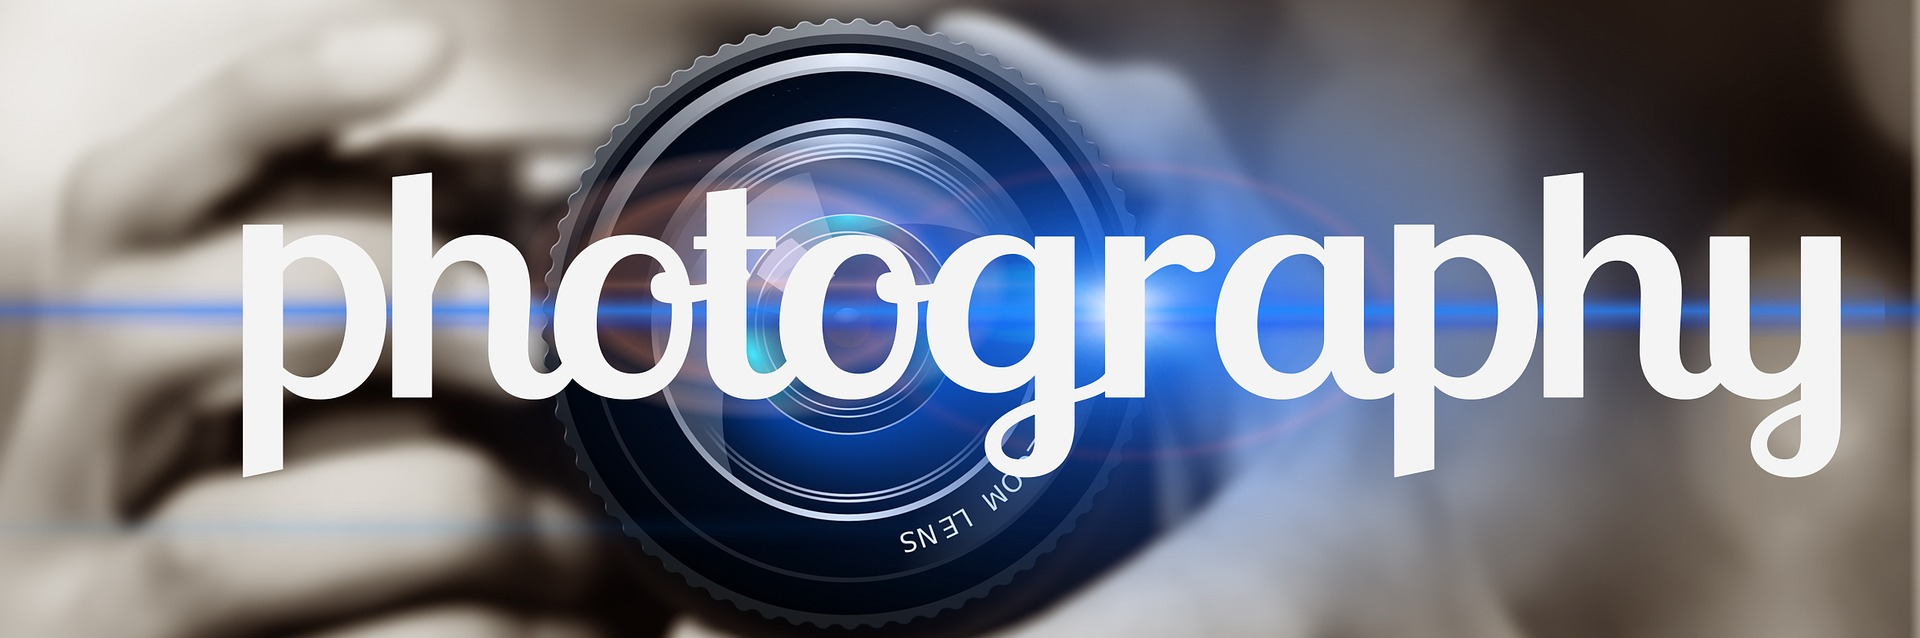 Photography written in front of a camera lens